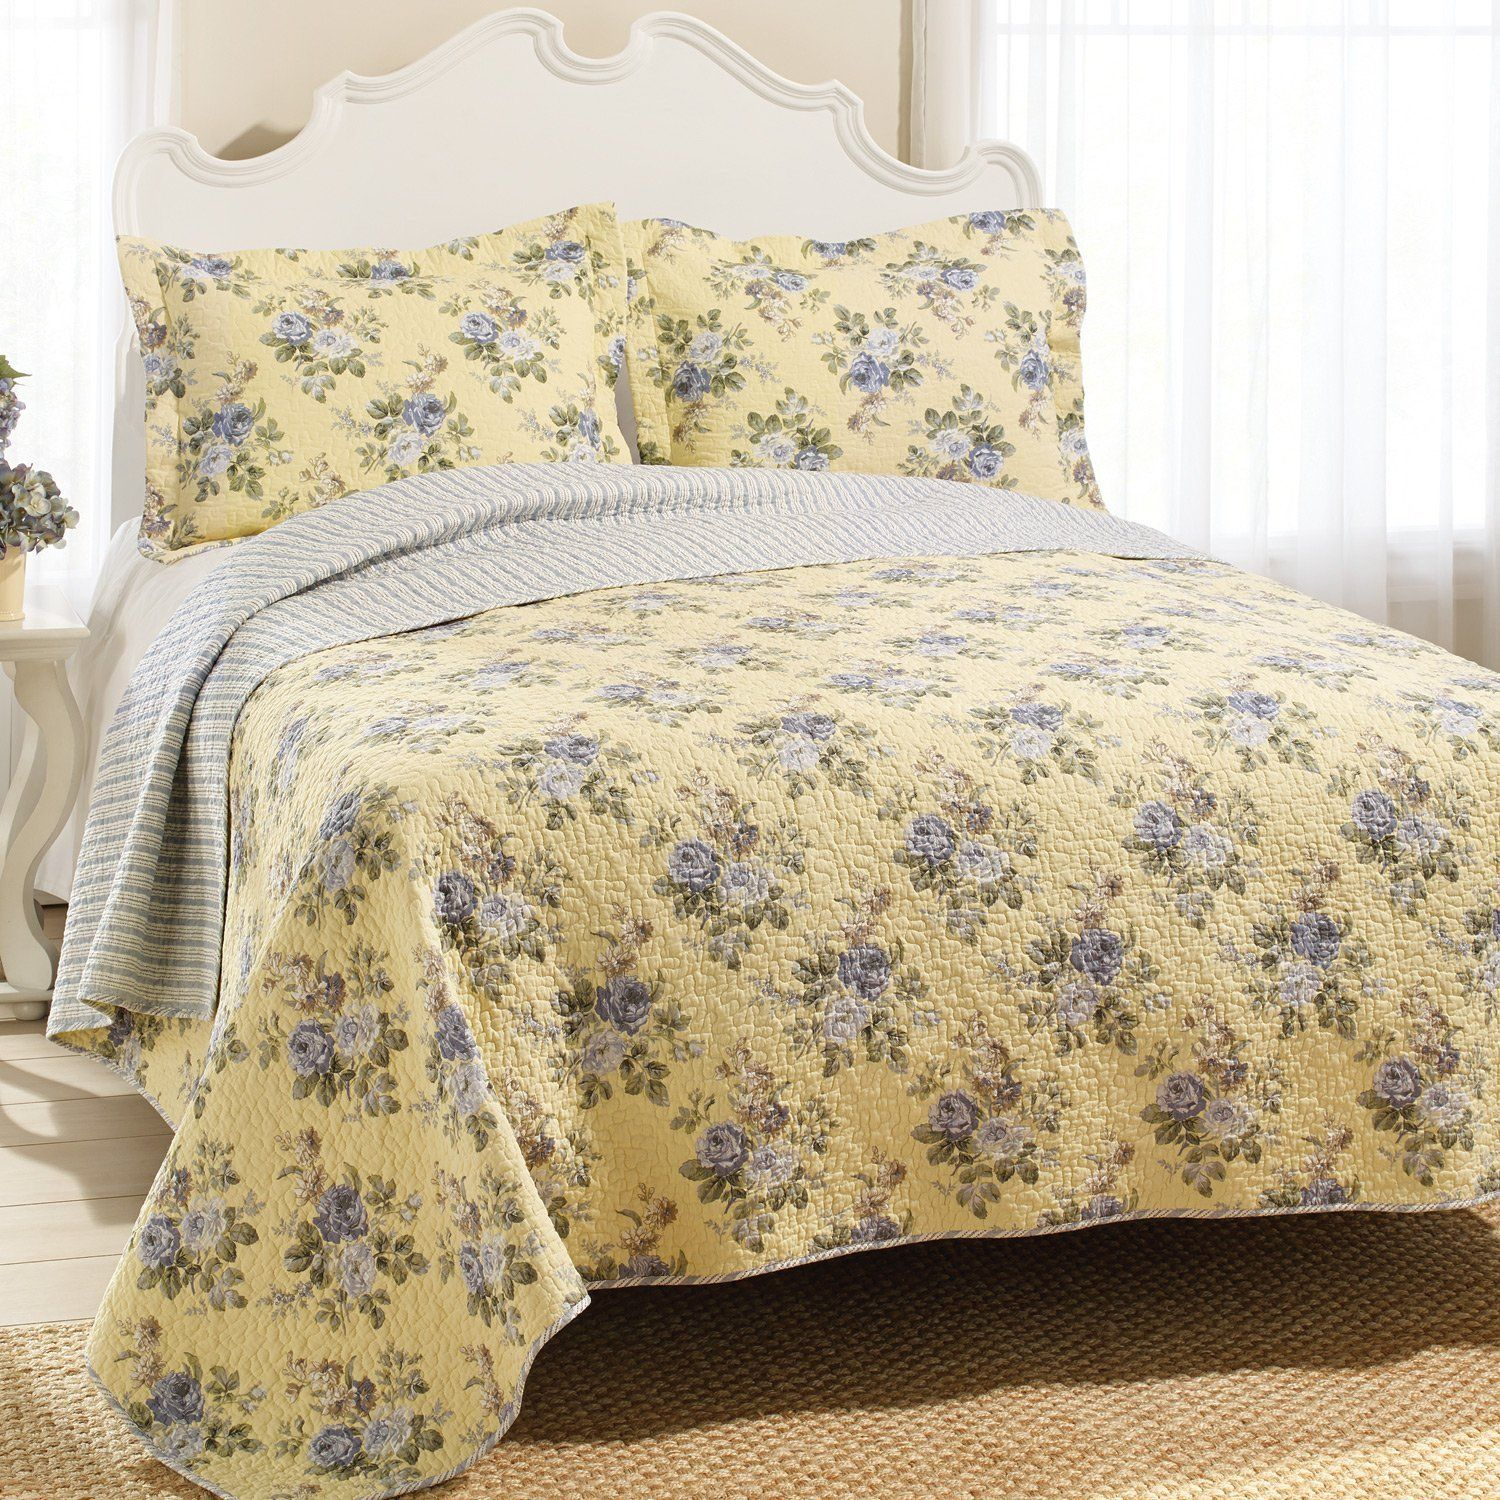 fashions home cover full with ease duvet and nc mustard yellow bedding quilt sale pillow spicy covers set queen curtains catalina amazon on